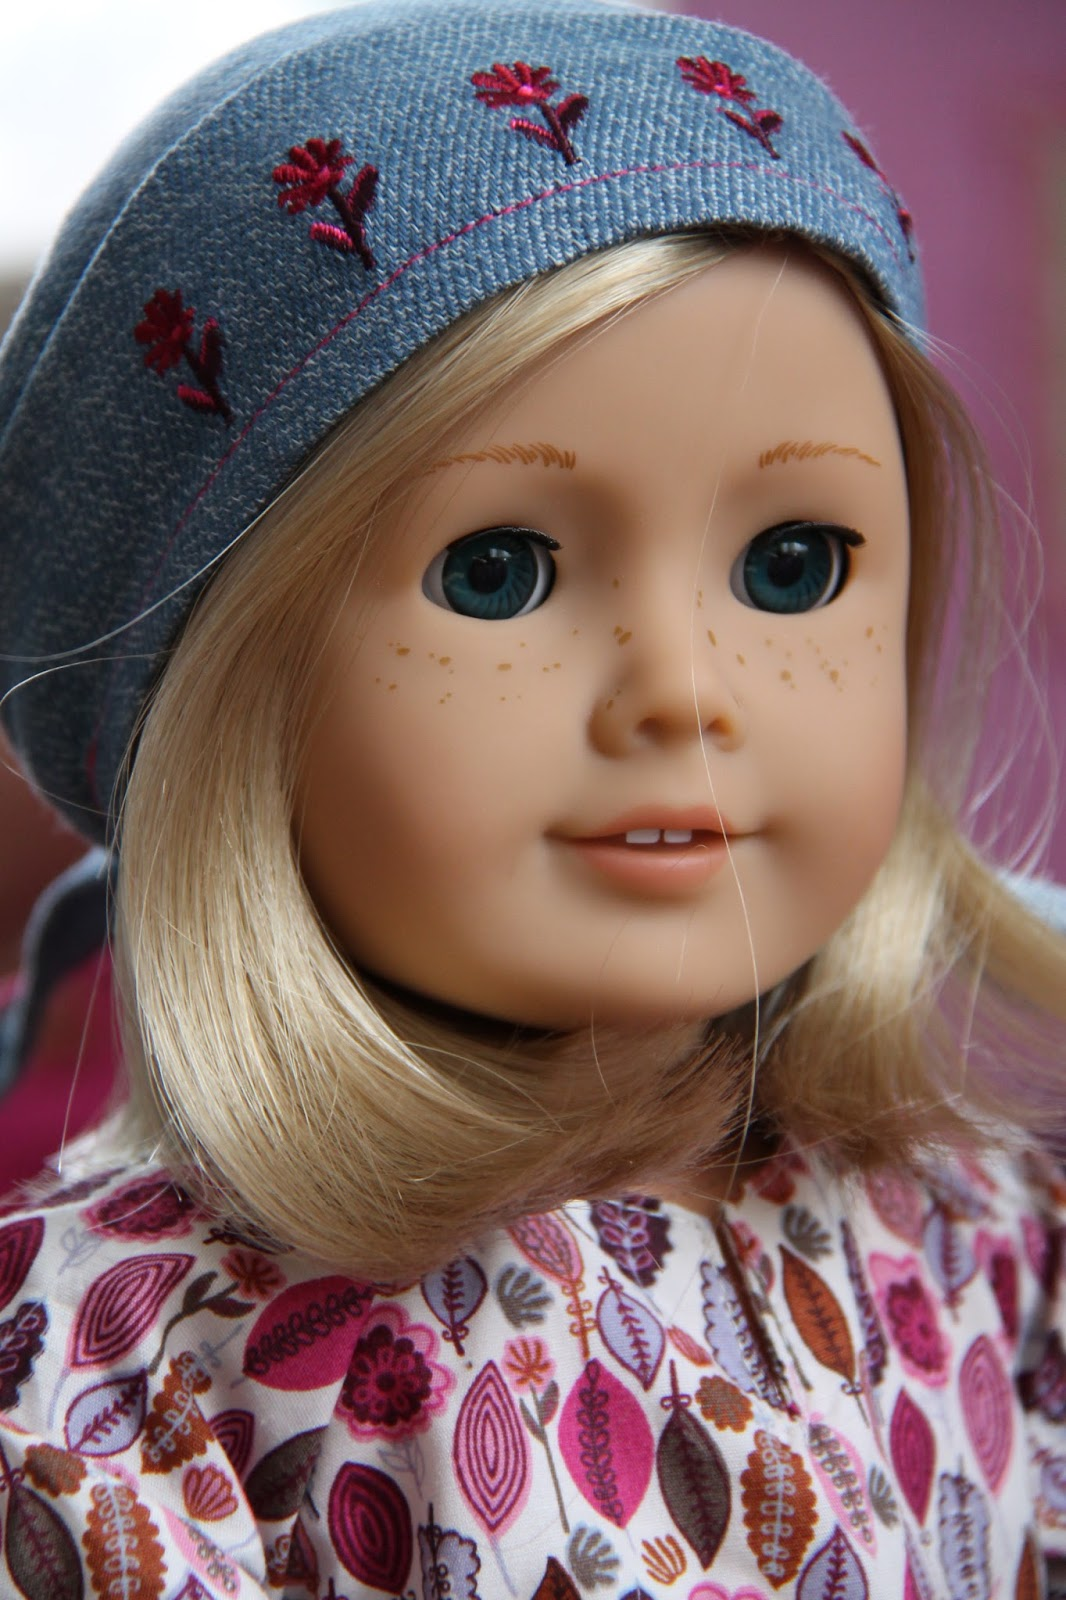 American Girl Doll Play: Bitty Baby and Bitty Twin outfits ...